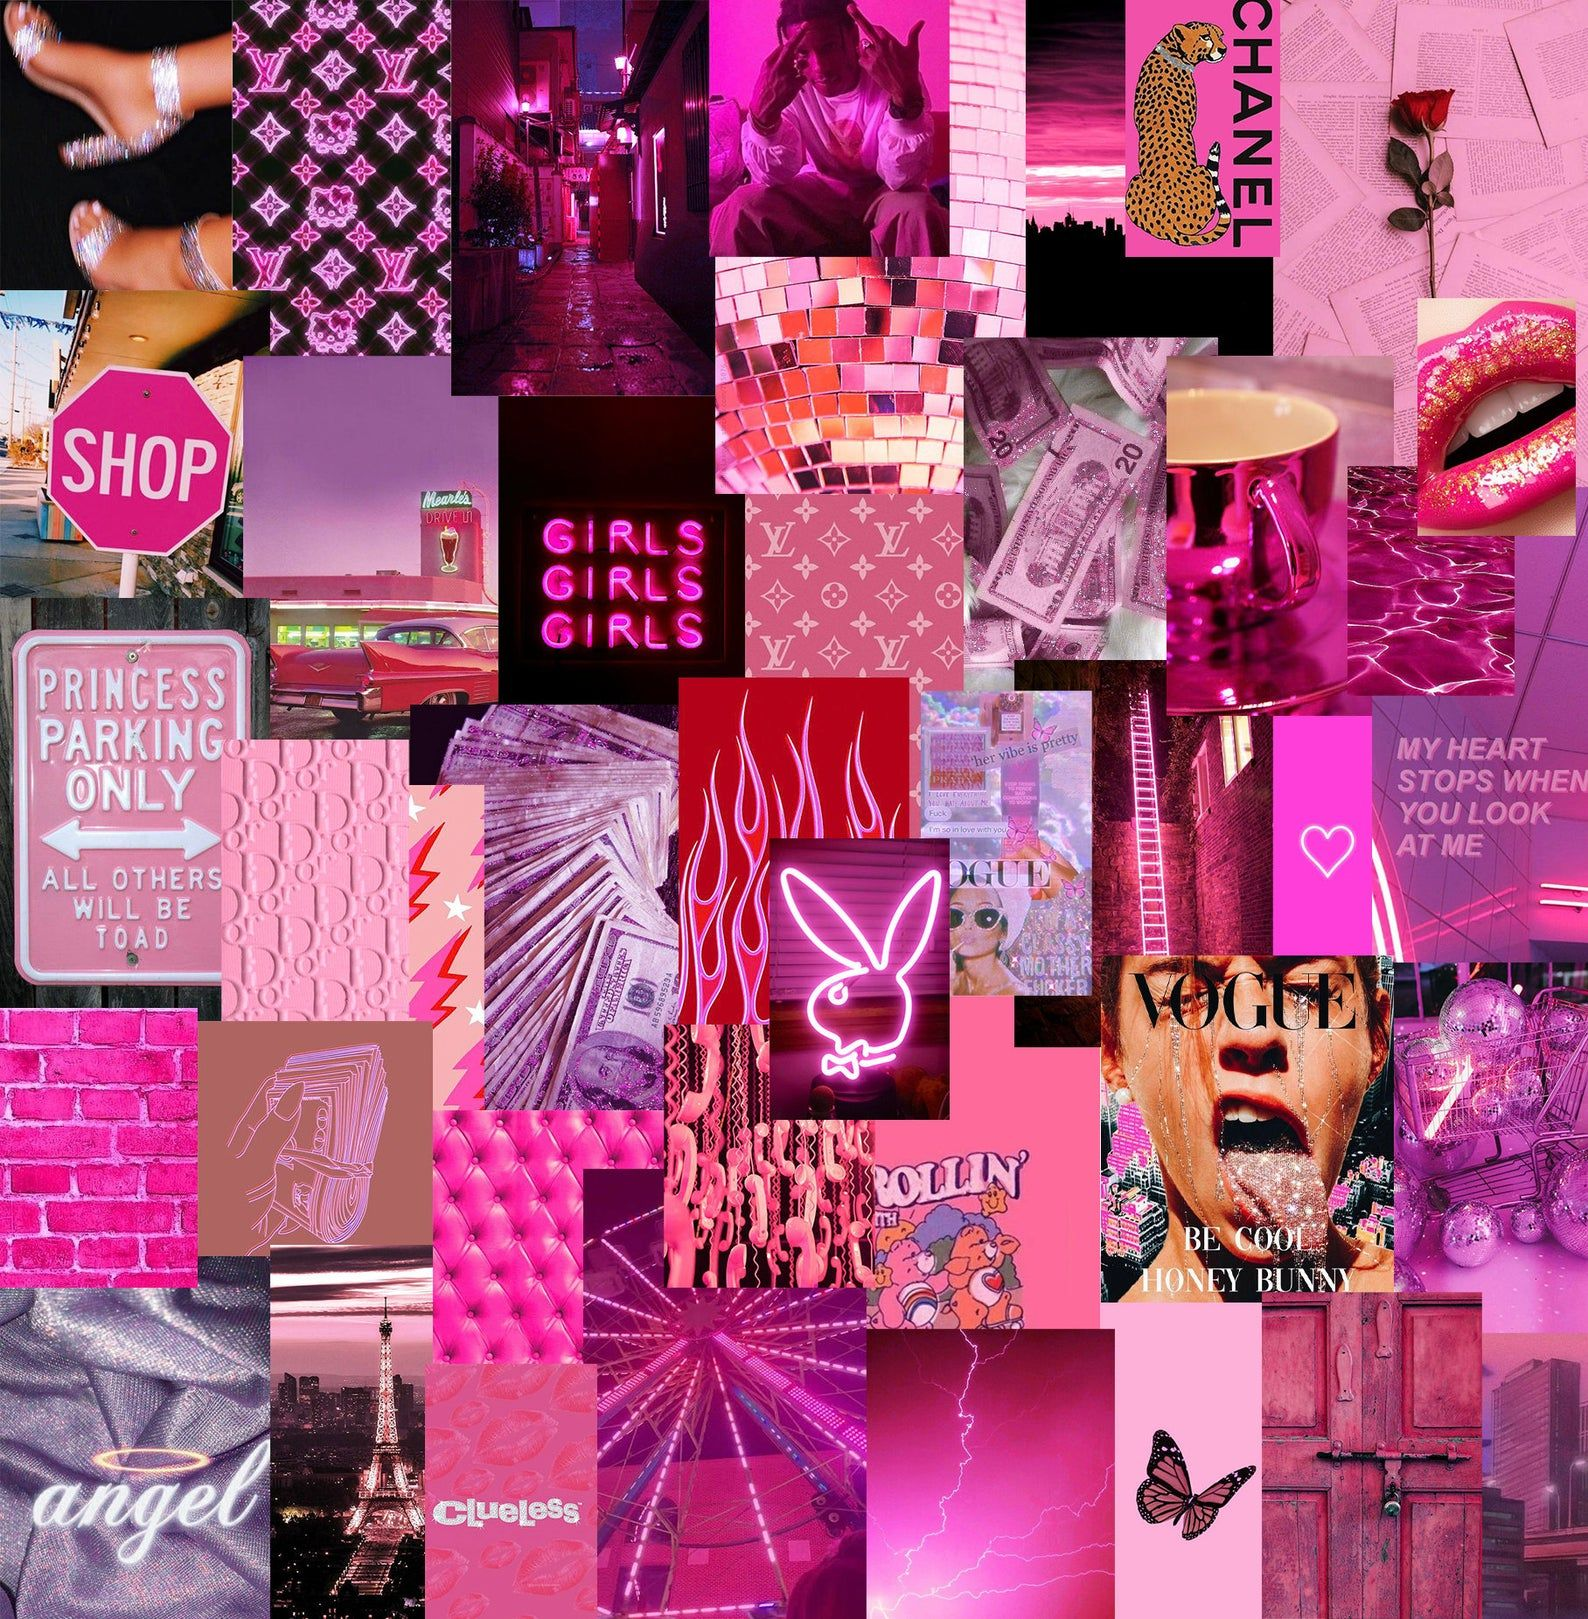 Neon Pink Colors Wall Collage Kit In 2020 Pink Wallpaper Girly Wall Collage Picture Wall Bedroom